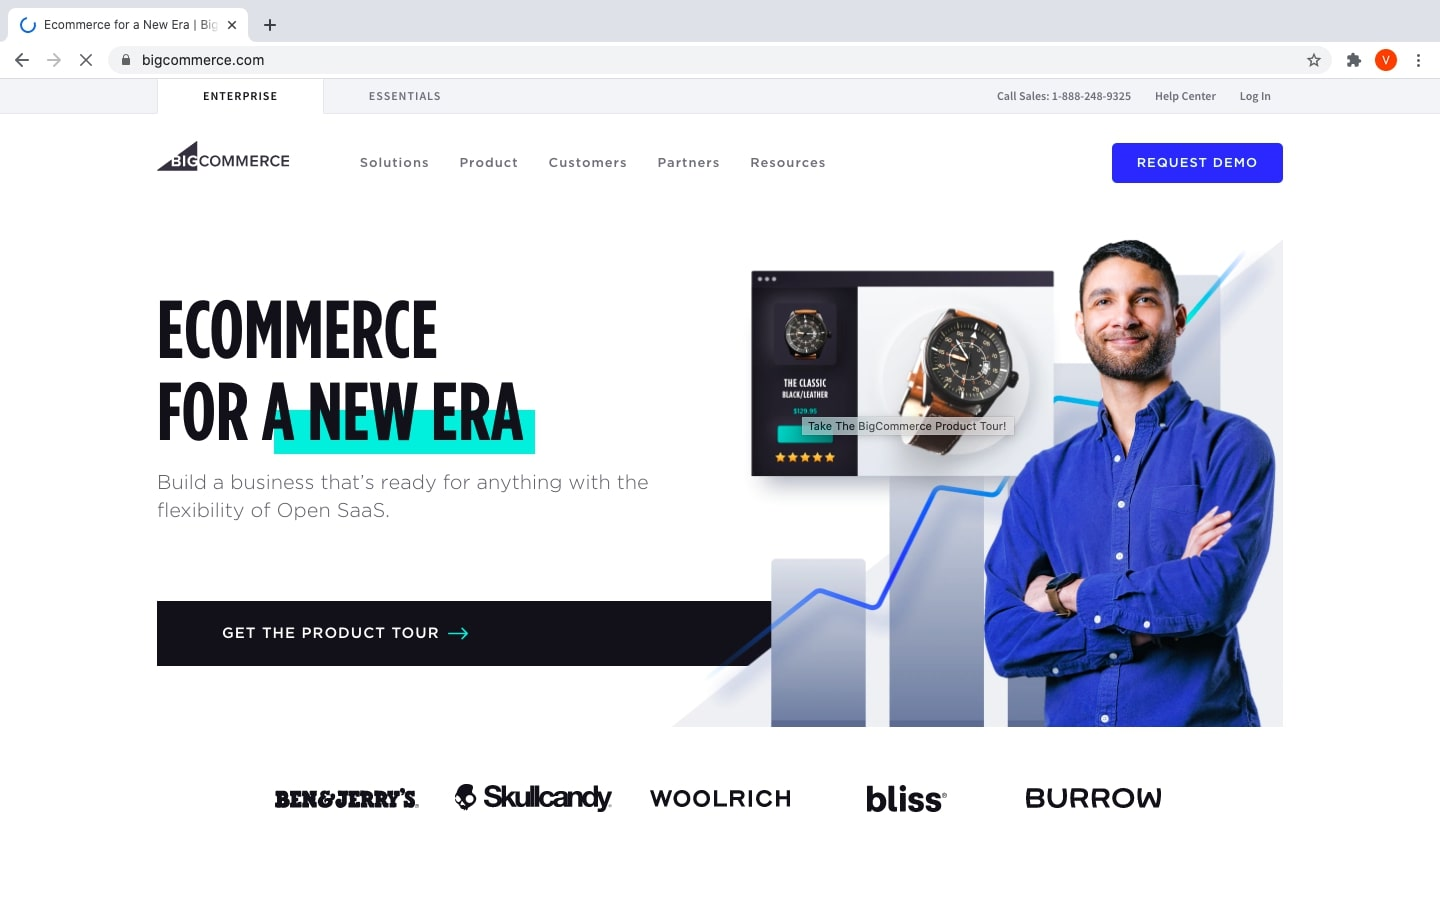 BigCommerce interface